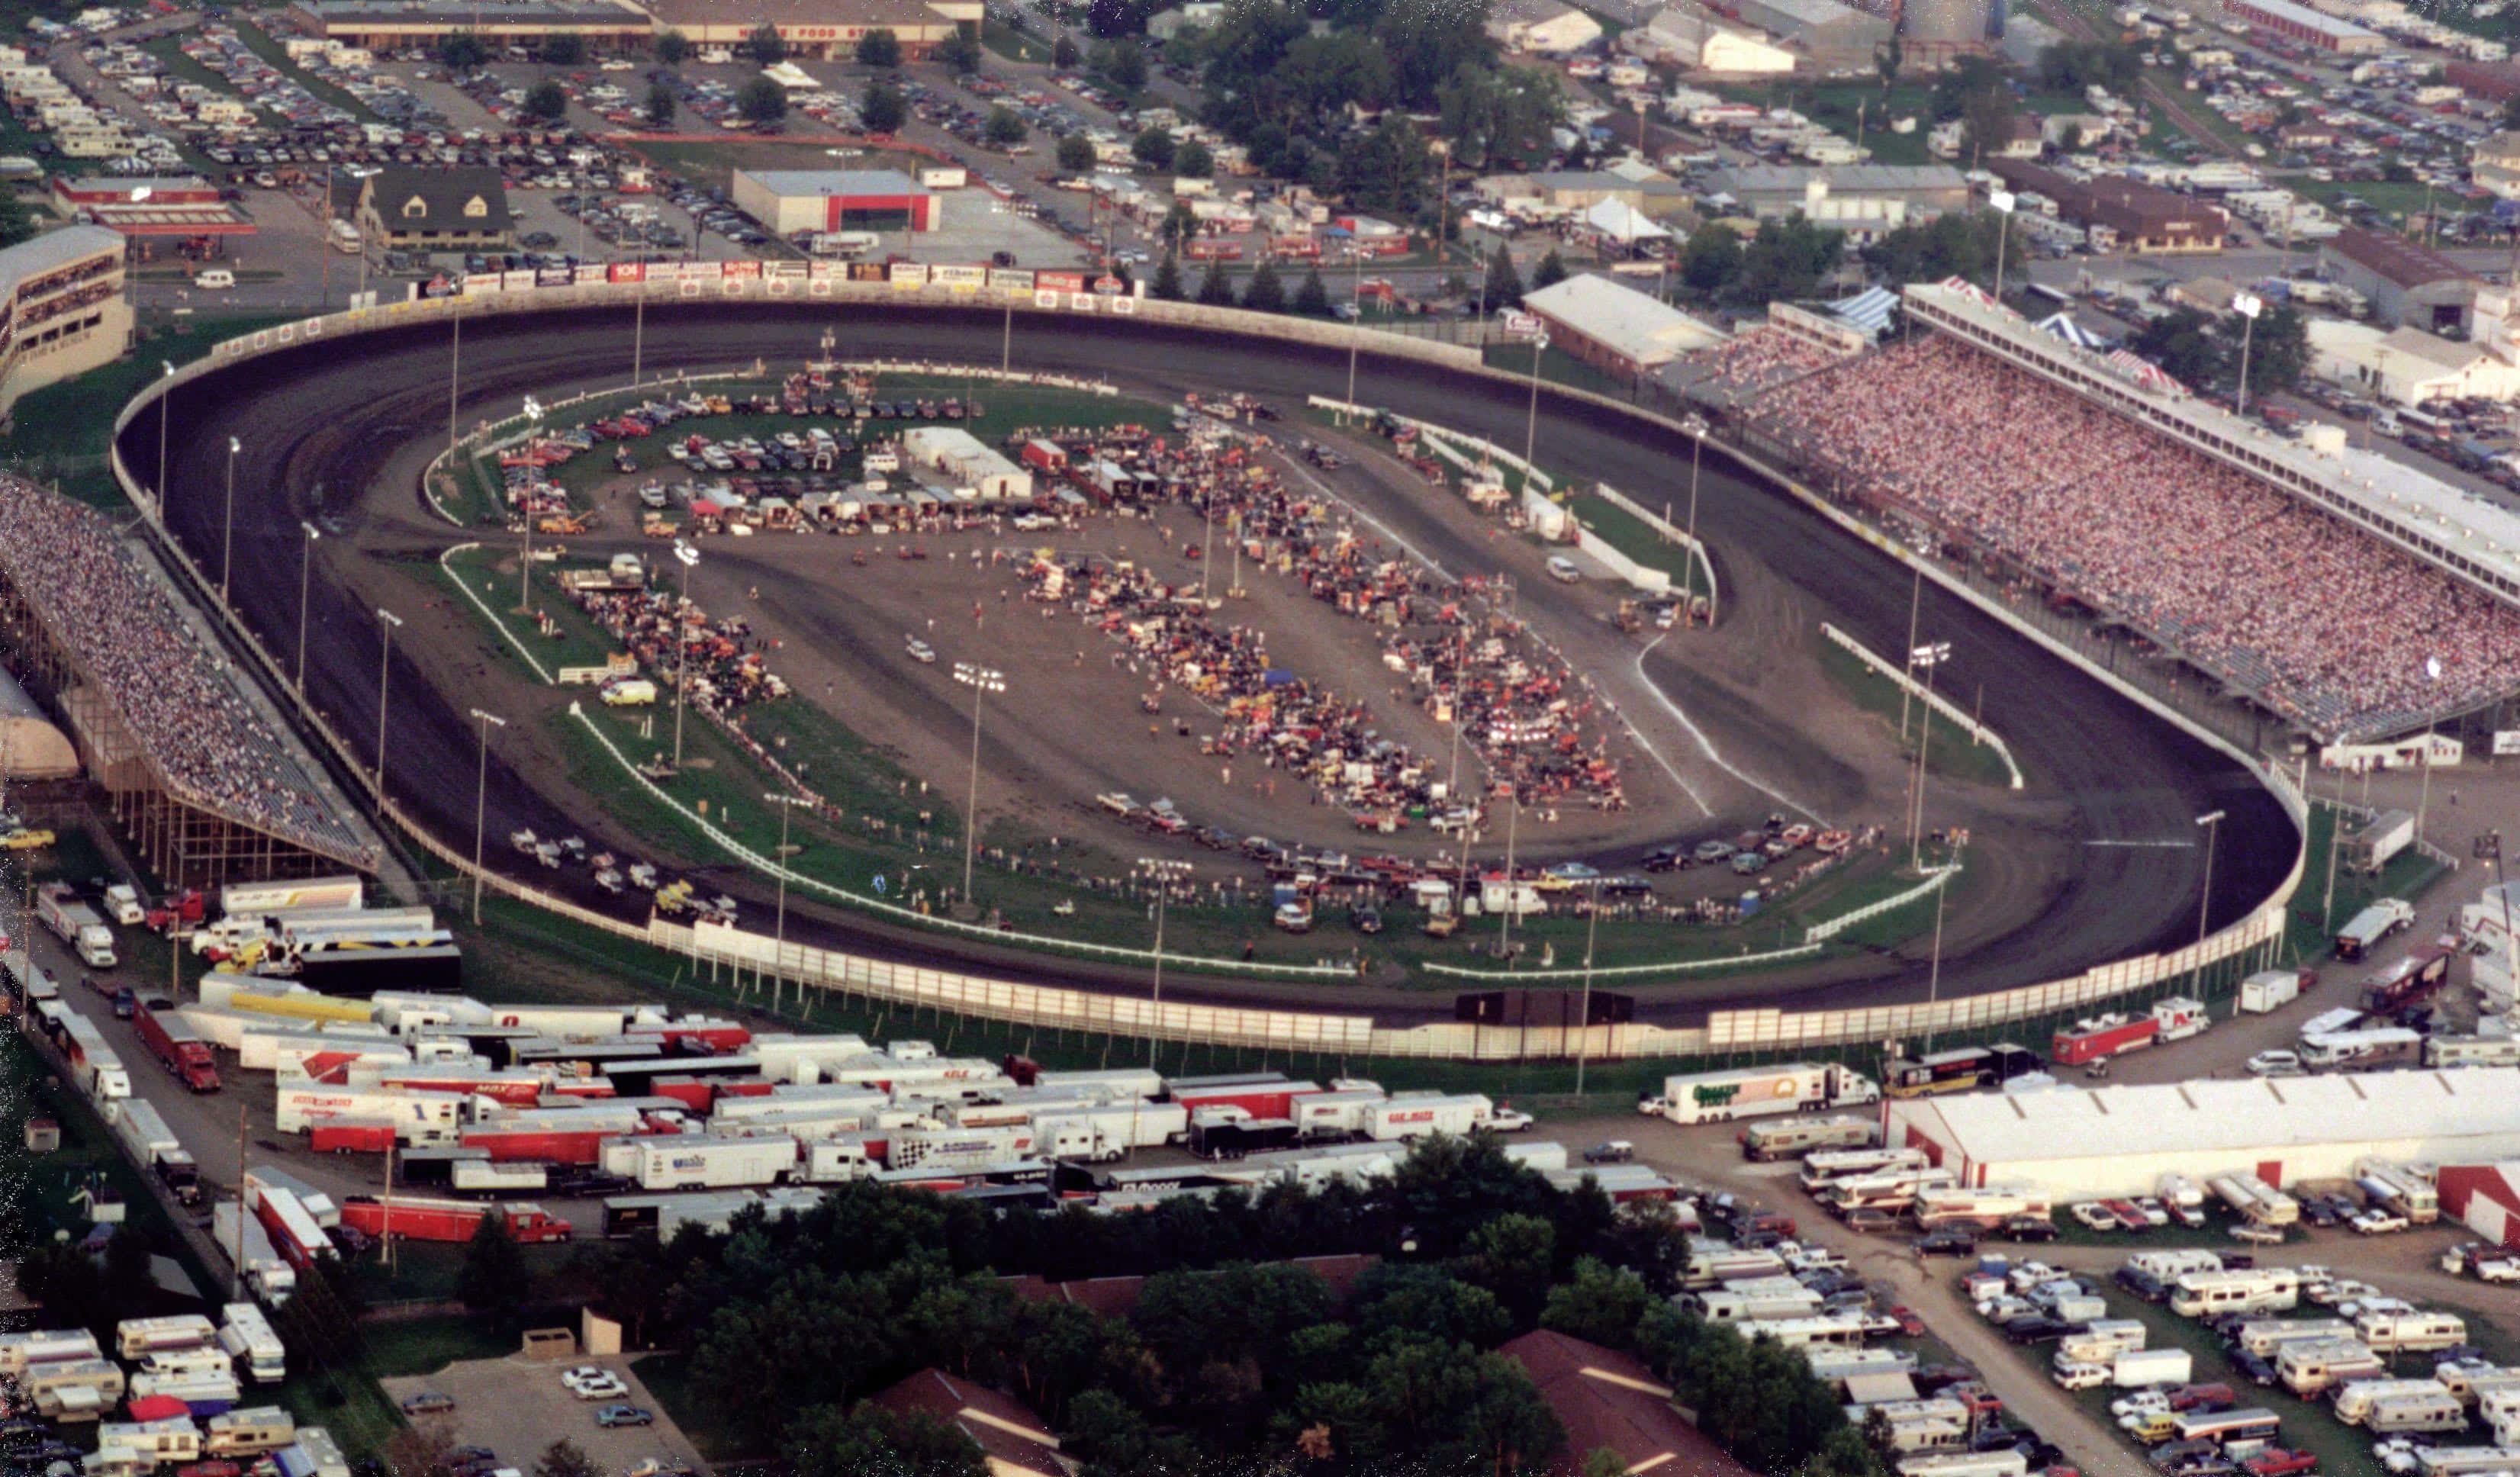 Raceway from above